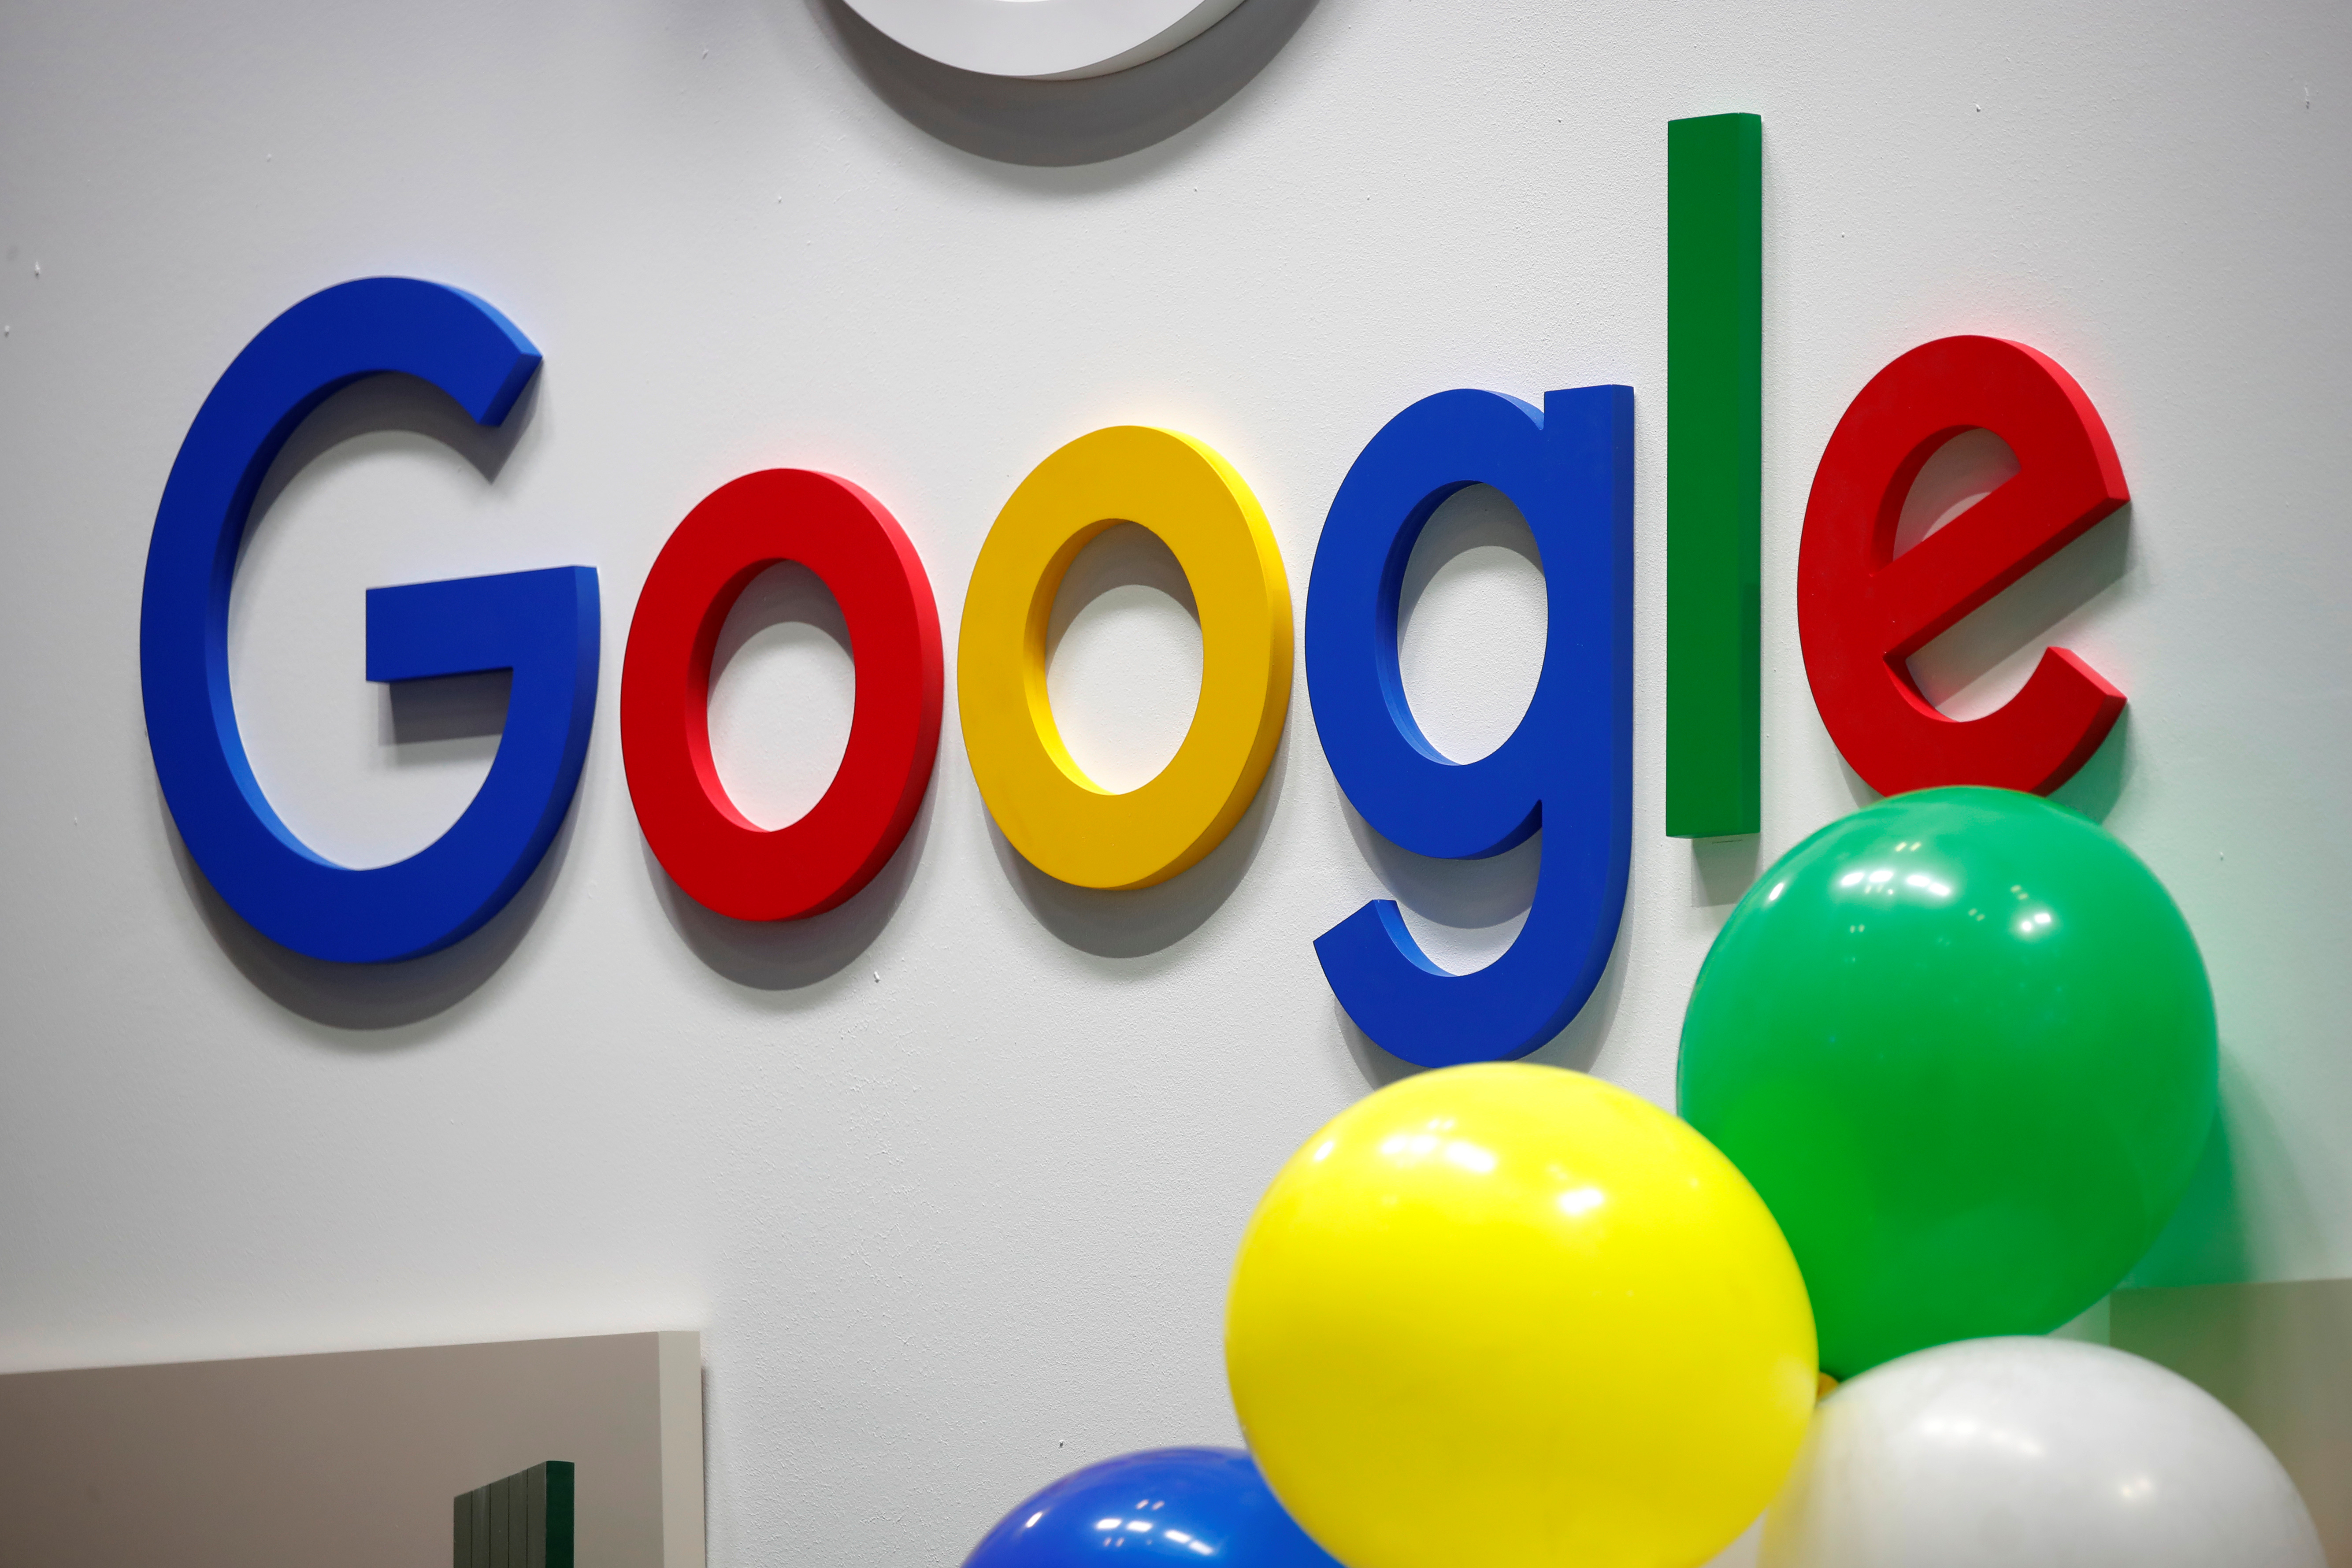 The logo of Google is seen at the high profile startups and high tech leaders gathering, Viva Tech,in Paris, France May 16, 2019. REUTERS/Charles Platiau